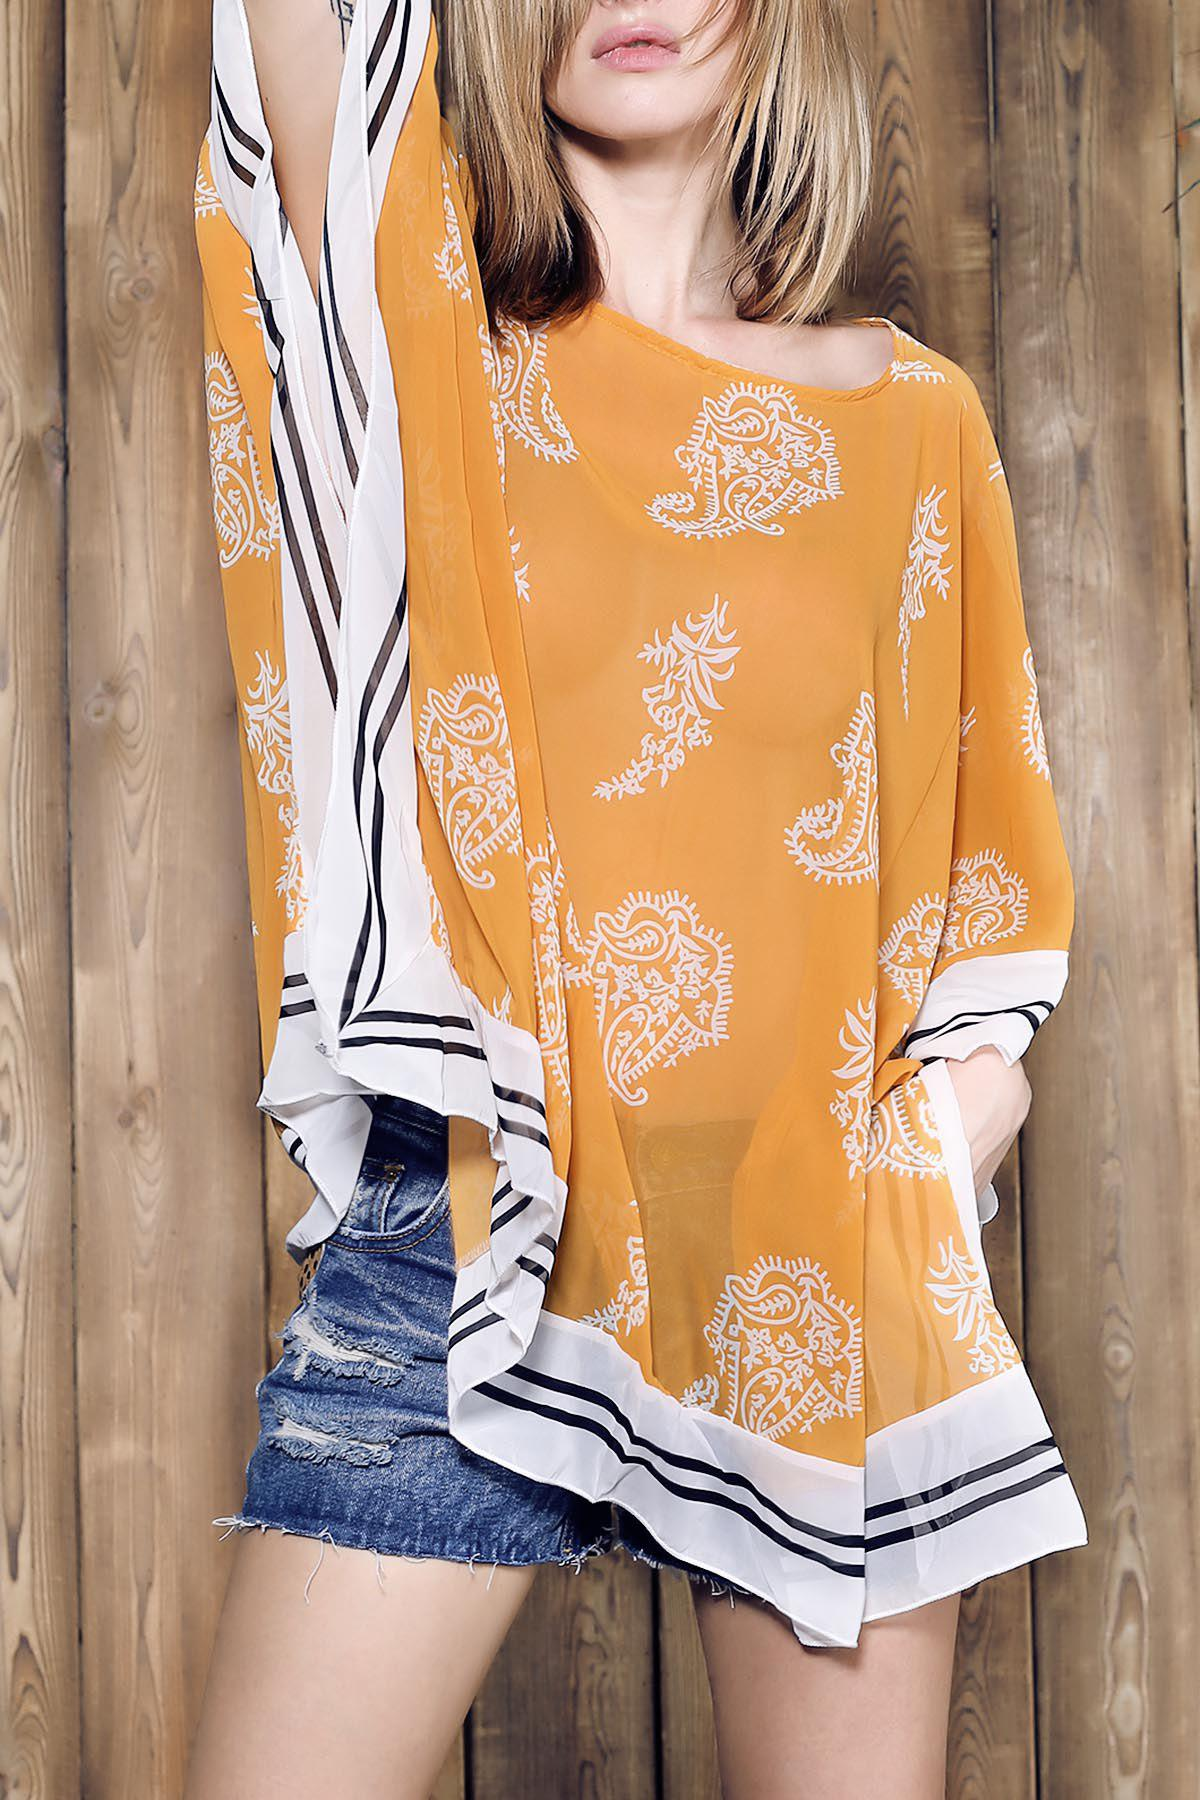 Stylish V-Neck 3/4 Sleeve Loose-Fitting Women's Chiffon Cover-Up - YELLOW ONE SIZE(FIT SIZE XS TO M)